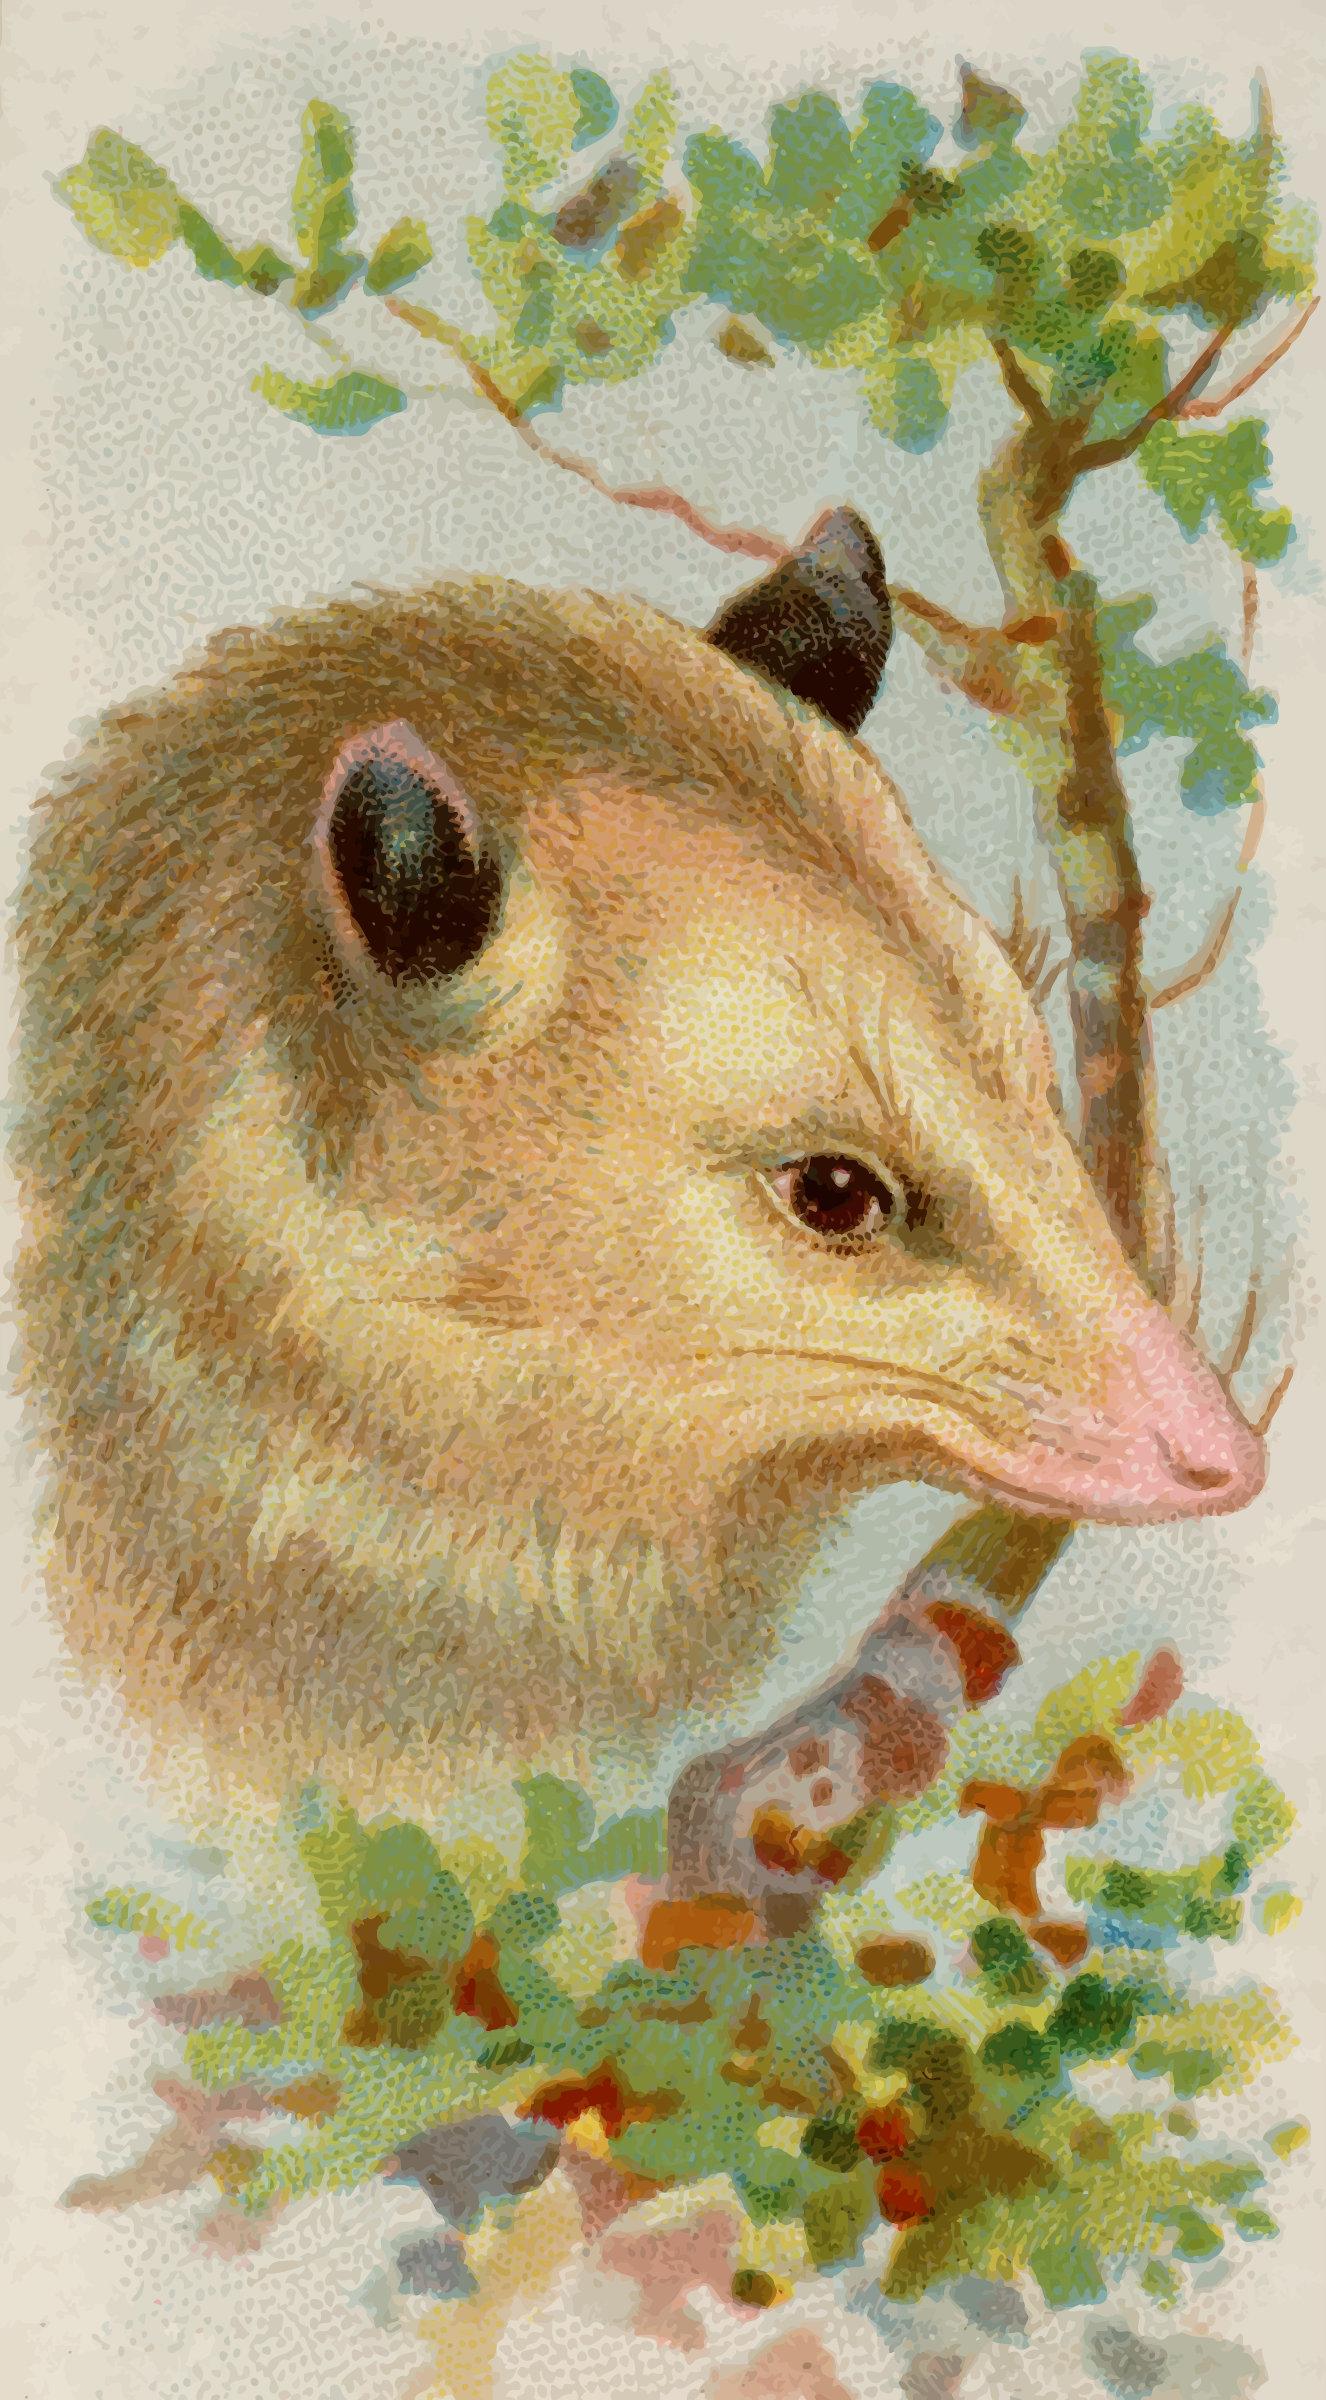 Cigarette card - Opossum by Firkin